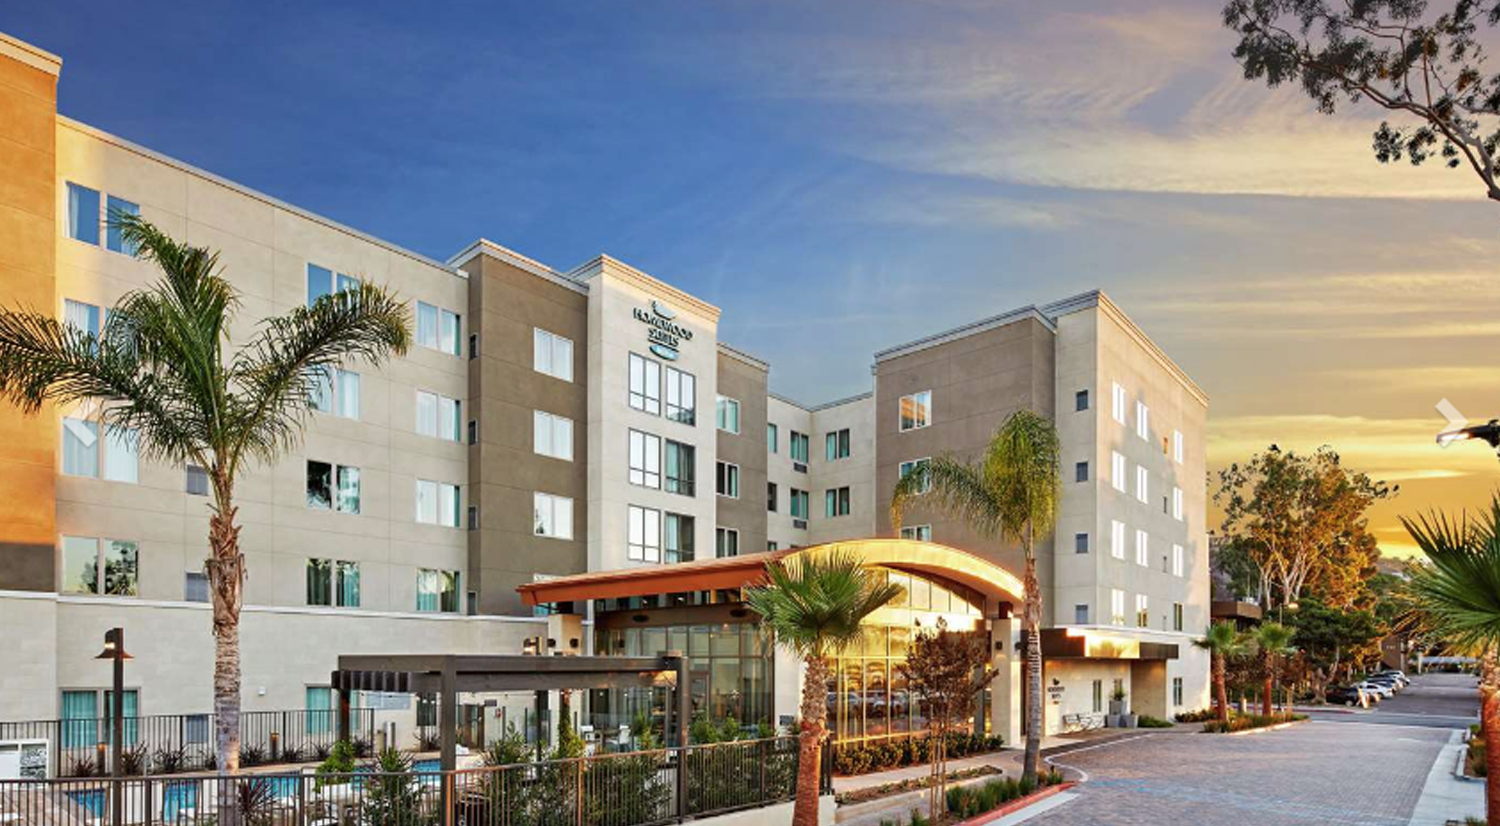 Homewood Suites by Hilton San Diego Mission Valley Hotel RecruitParents